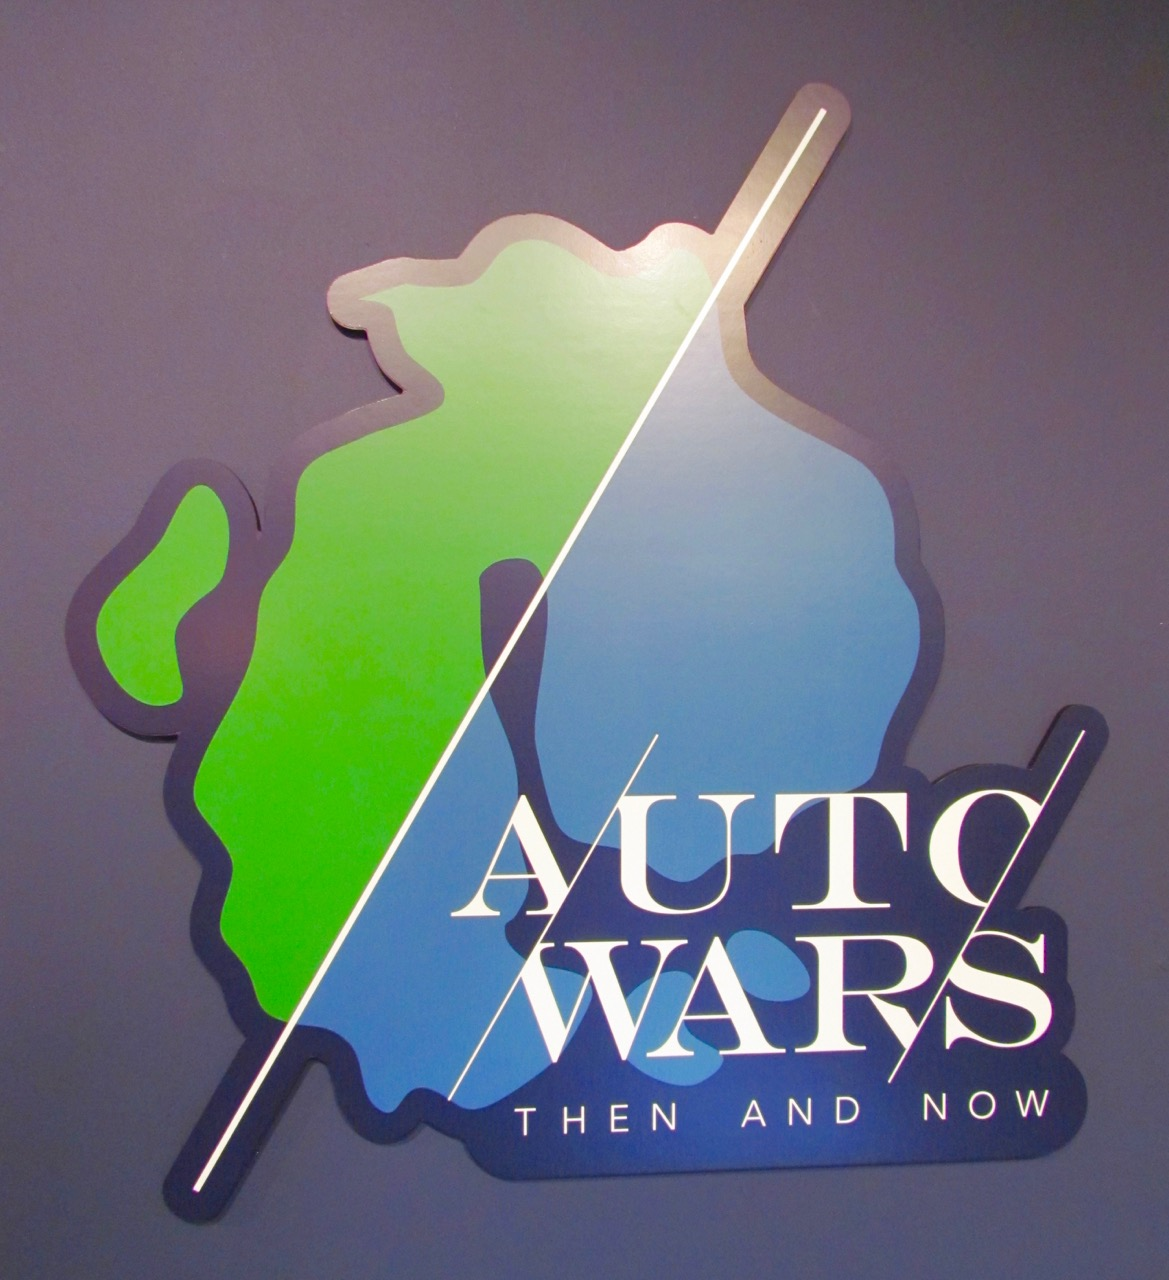 Auto Wars tells story of how cars were banned for several years on Mount Desert Island